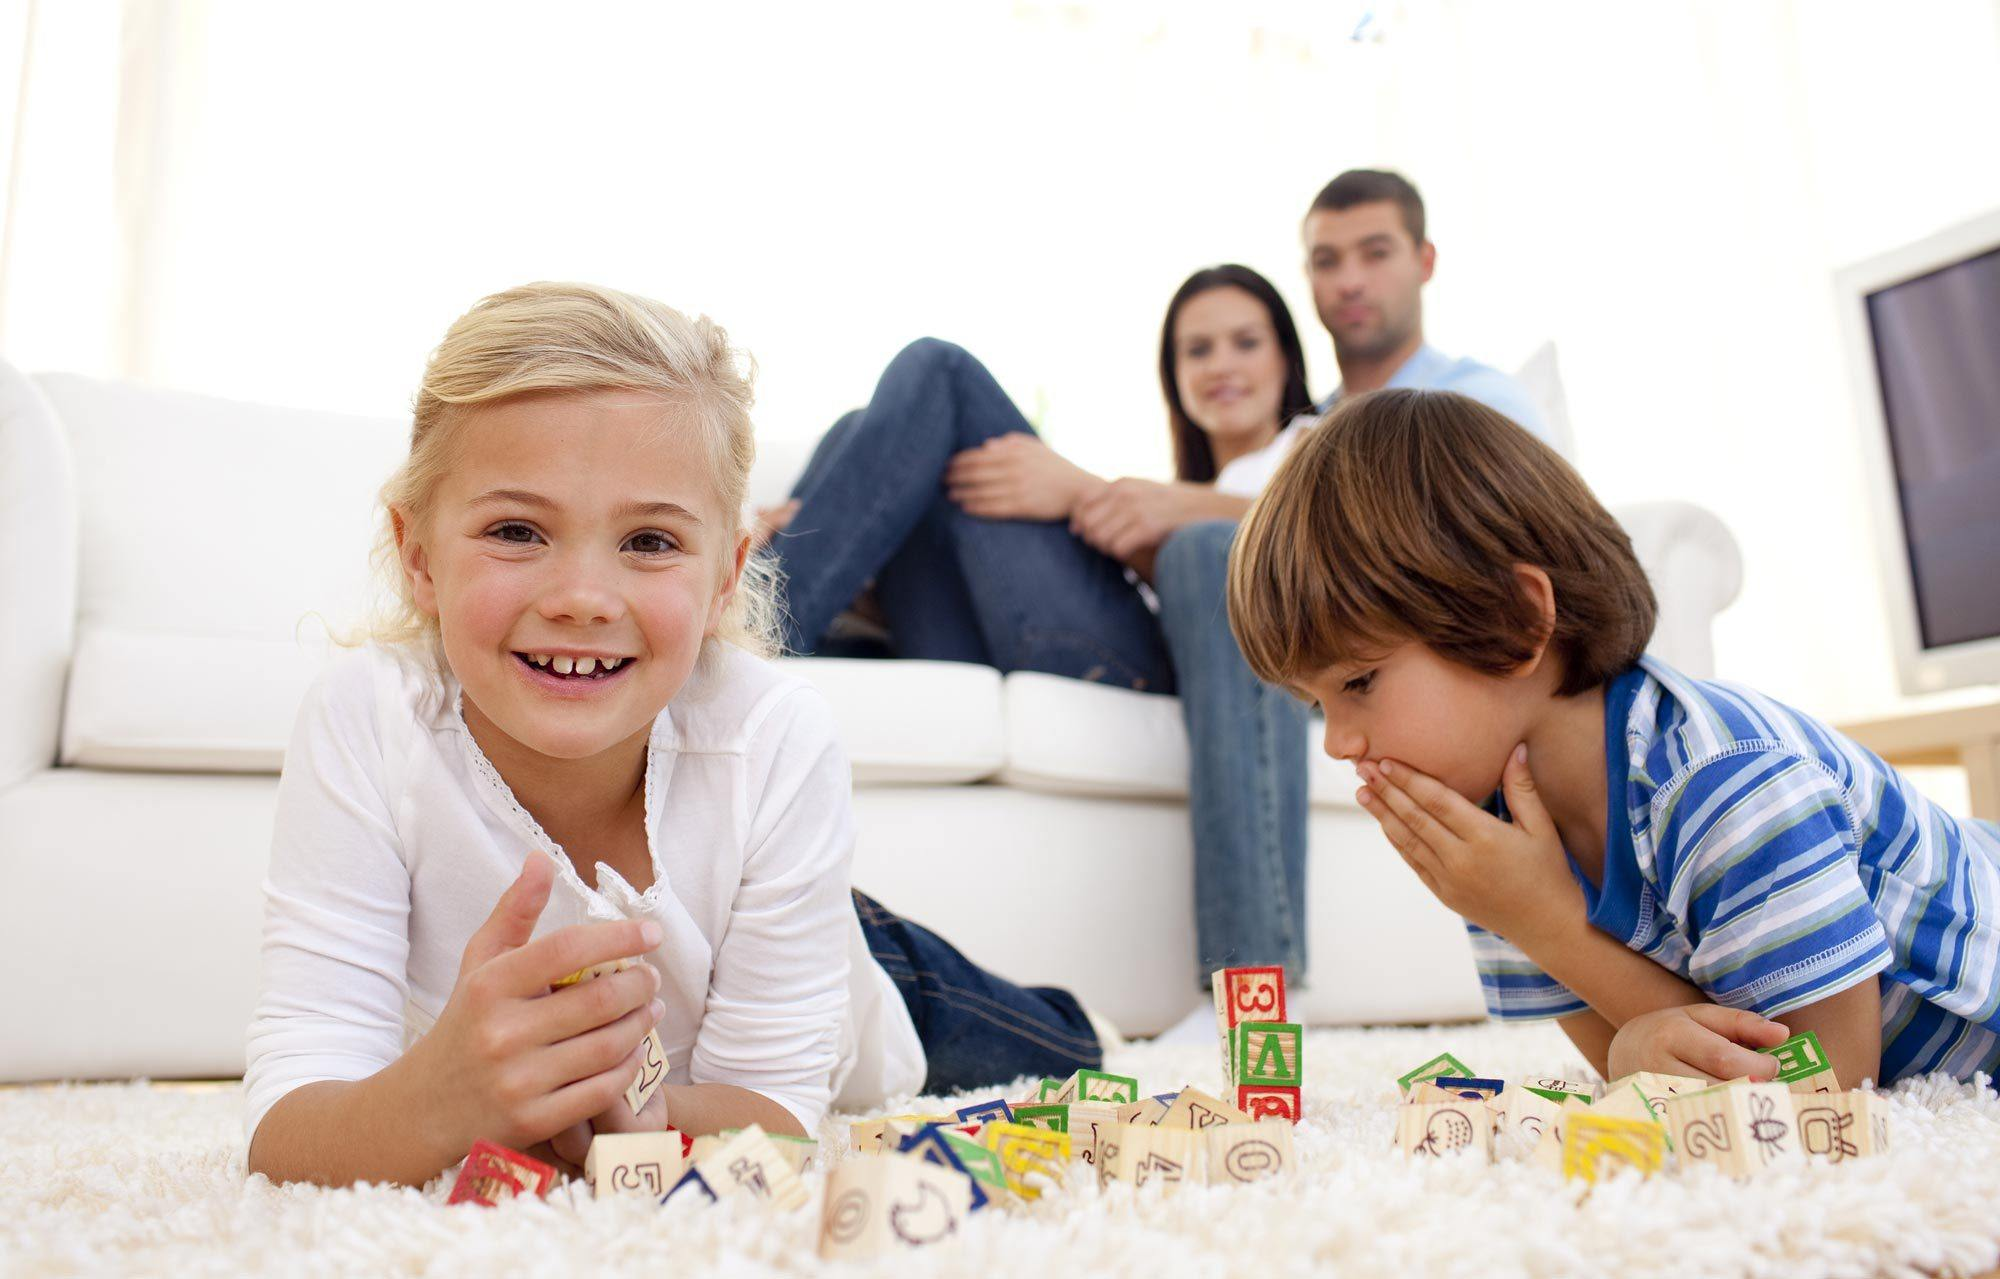 Children playing with blocks on the floor while their parents watch from the couch